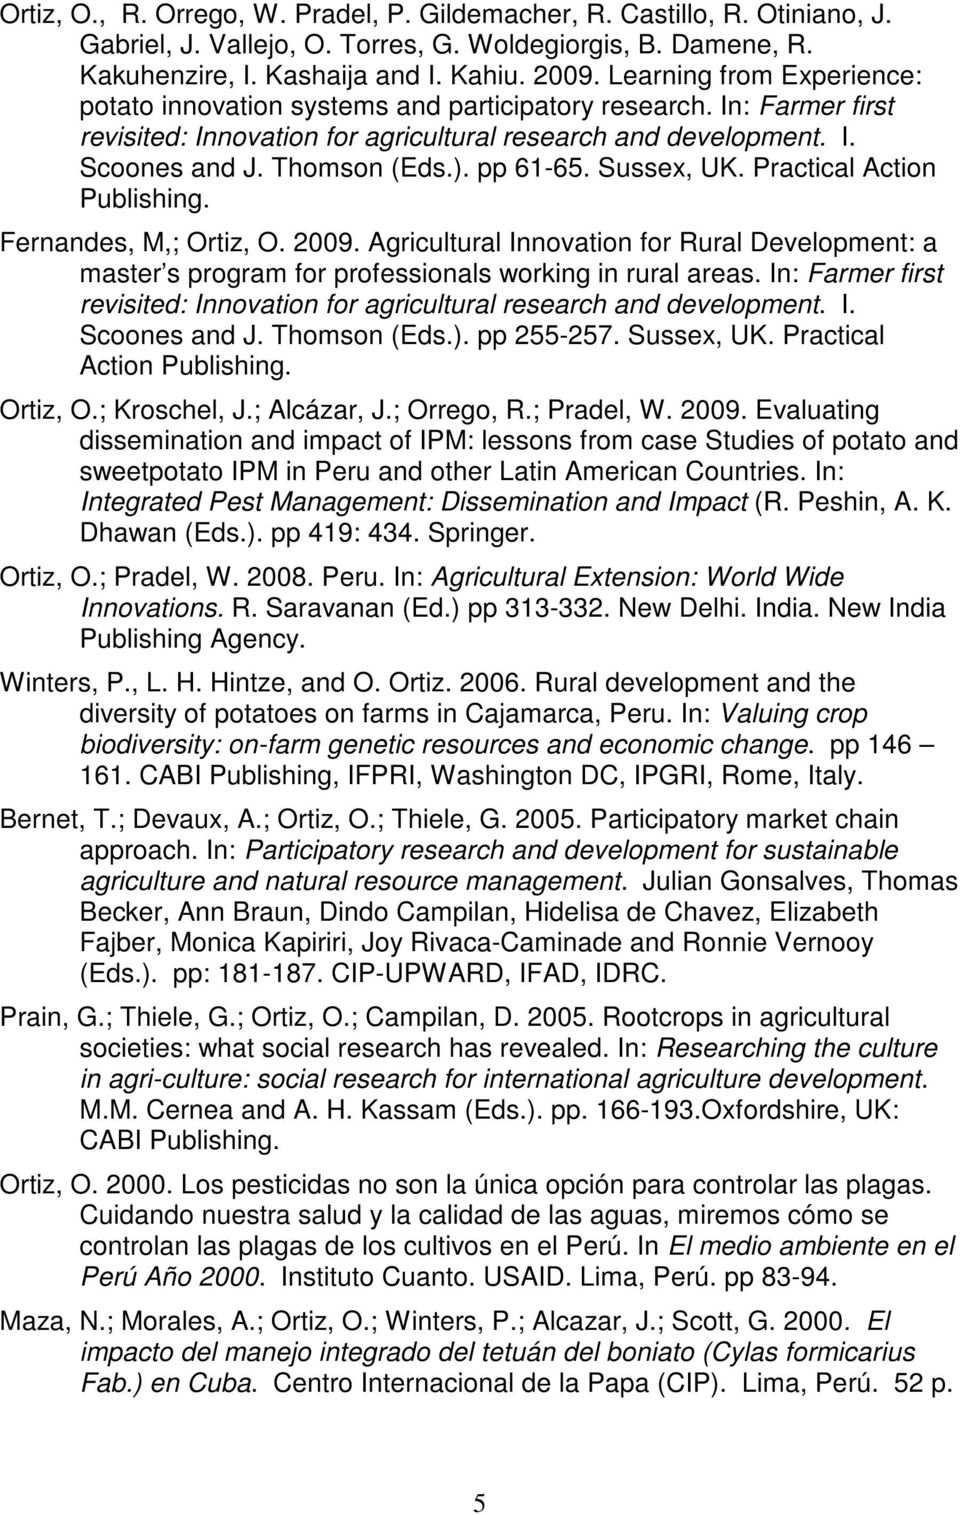 pp 61-65. Sussex, UK. Practical Action Publishing. Fernandes, M,; Ortiz, O. 2009. Agricultural Innovation for Rural Development: a master s program for professionals working in rural areas.